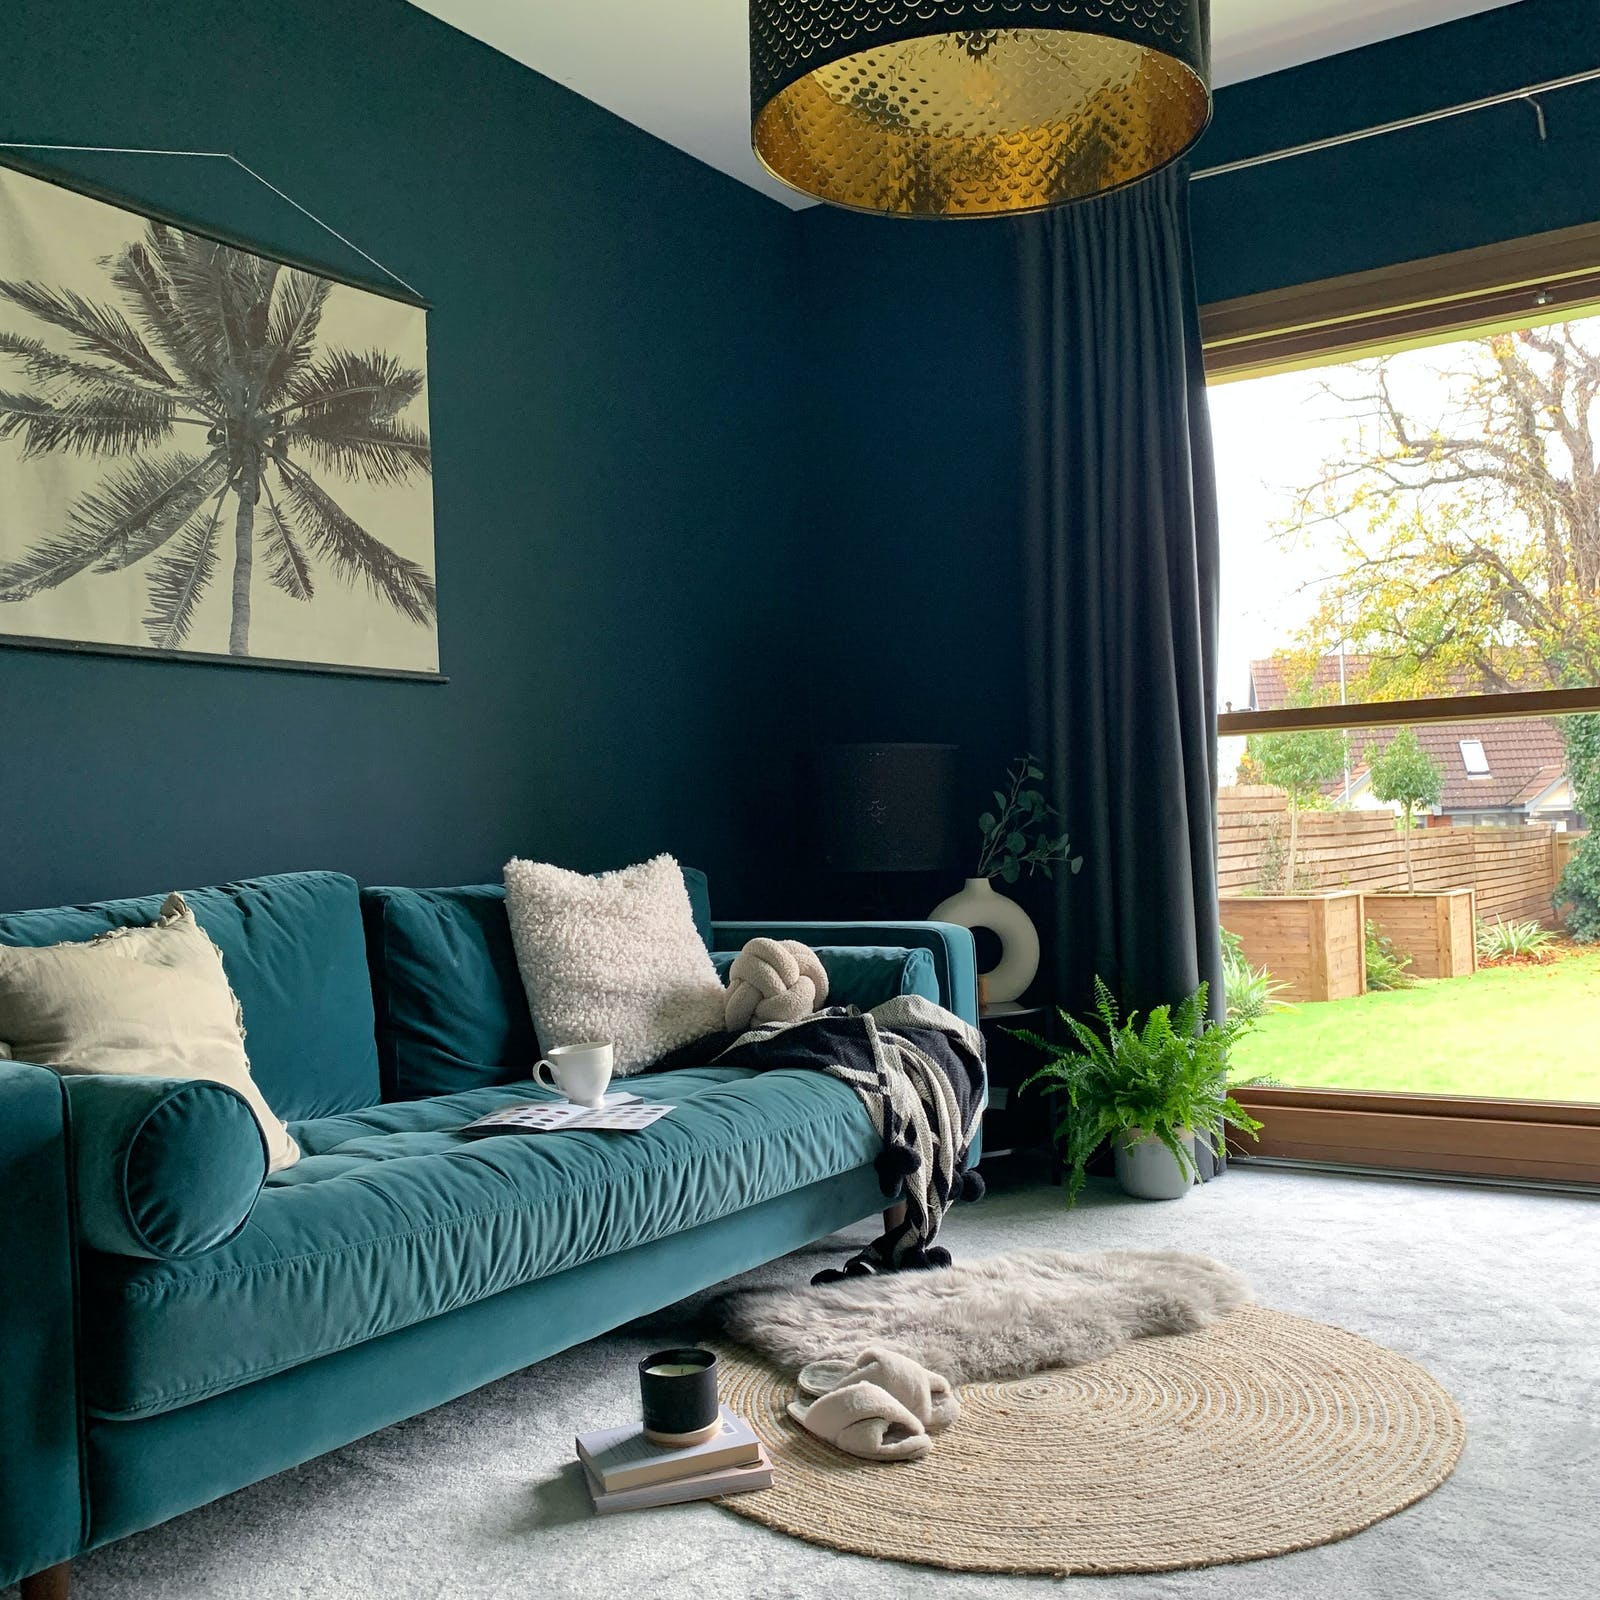 Dark blue lounge area, with a teal sofa and palm tree print on the wall